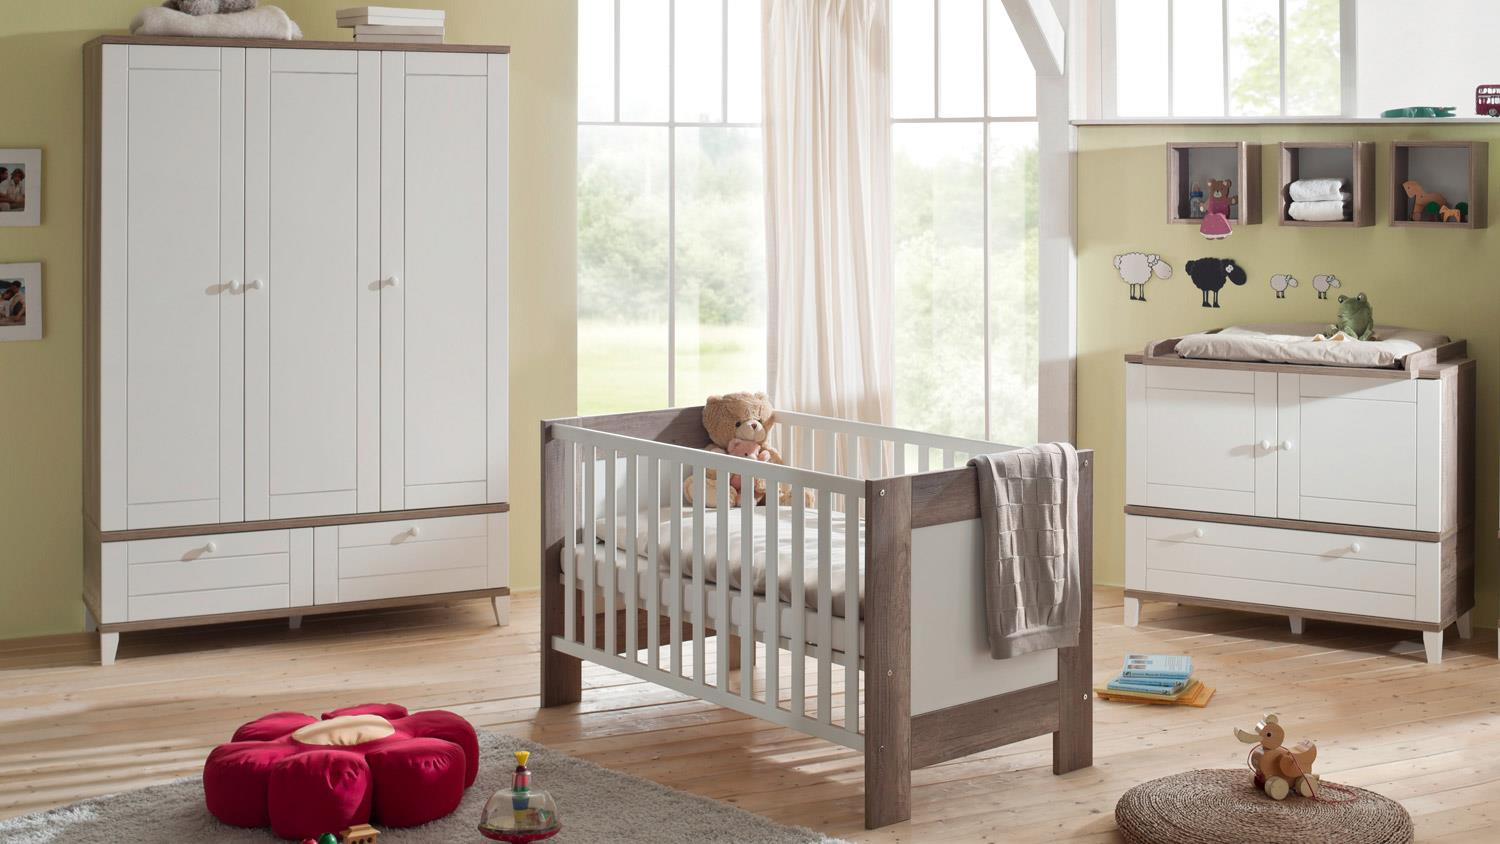 babyzimmer wiki prime gemtlich babyzimmer blau beige babyzimmer blau beige babyzimmer michi. Black Bedroom Furniture Sets. Home Design Ideas